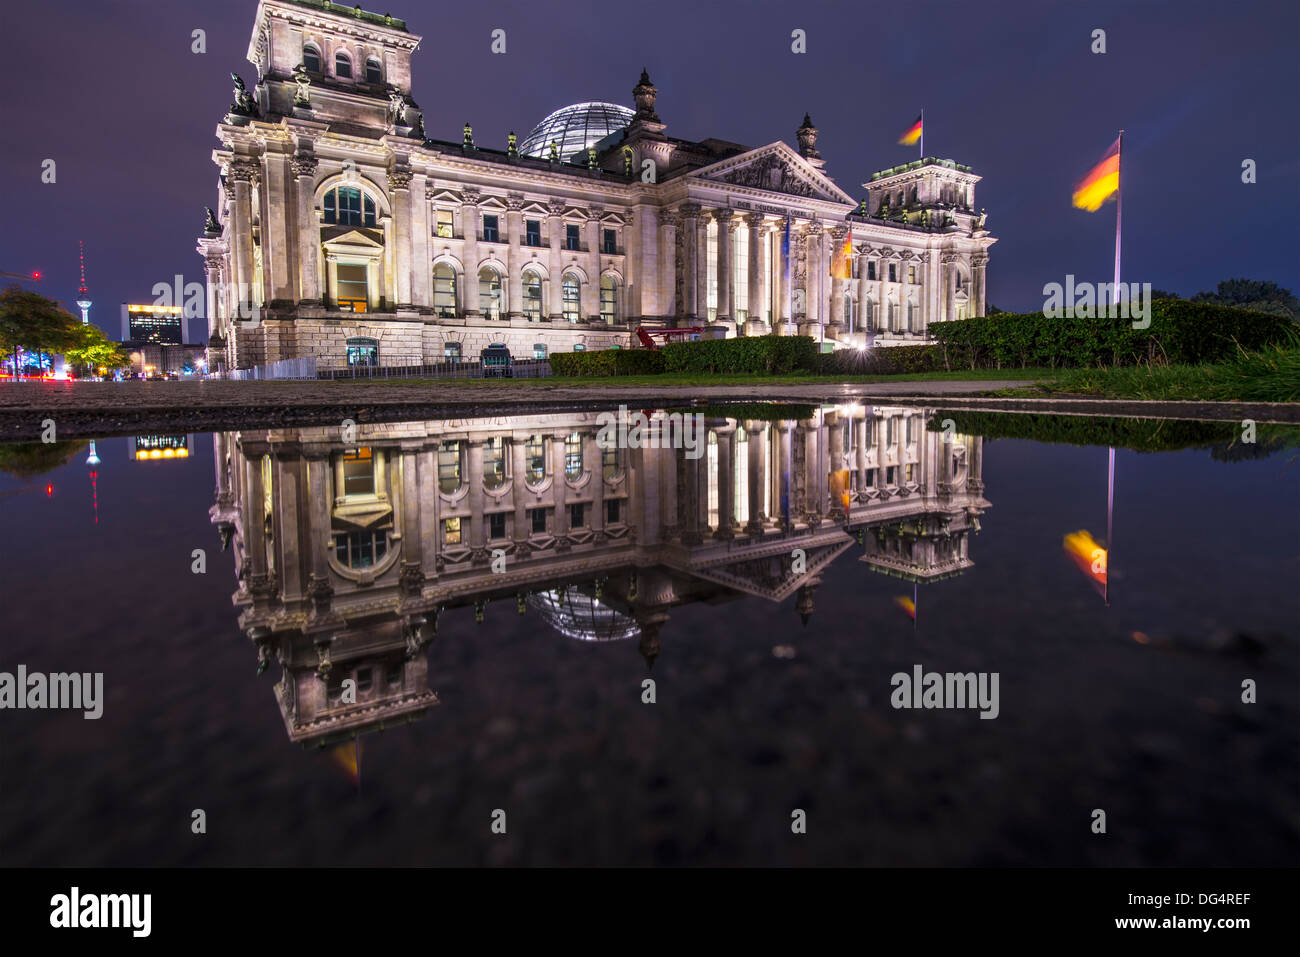 Reichstag Parliament Building in Berlin, Germany - Stock Image